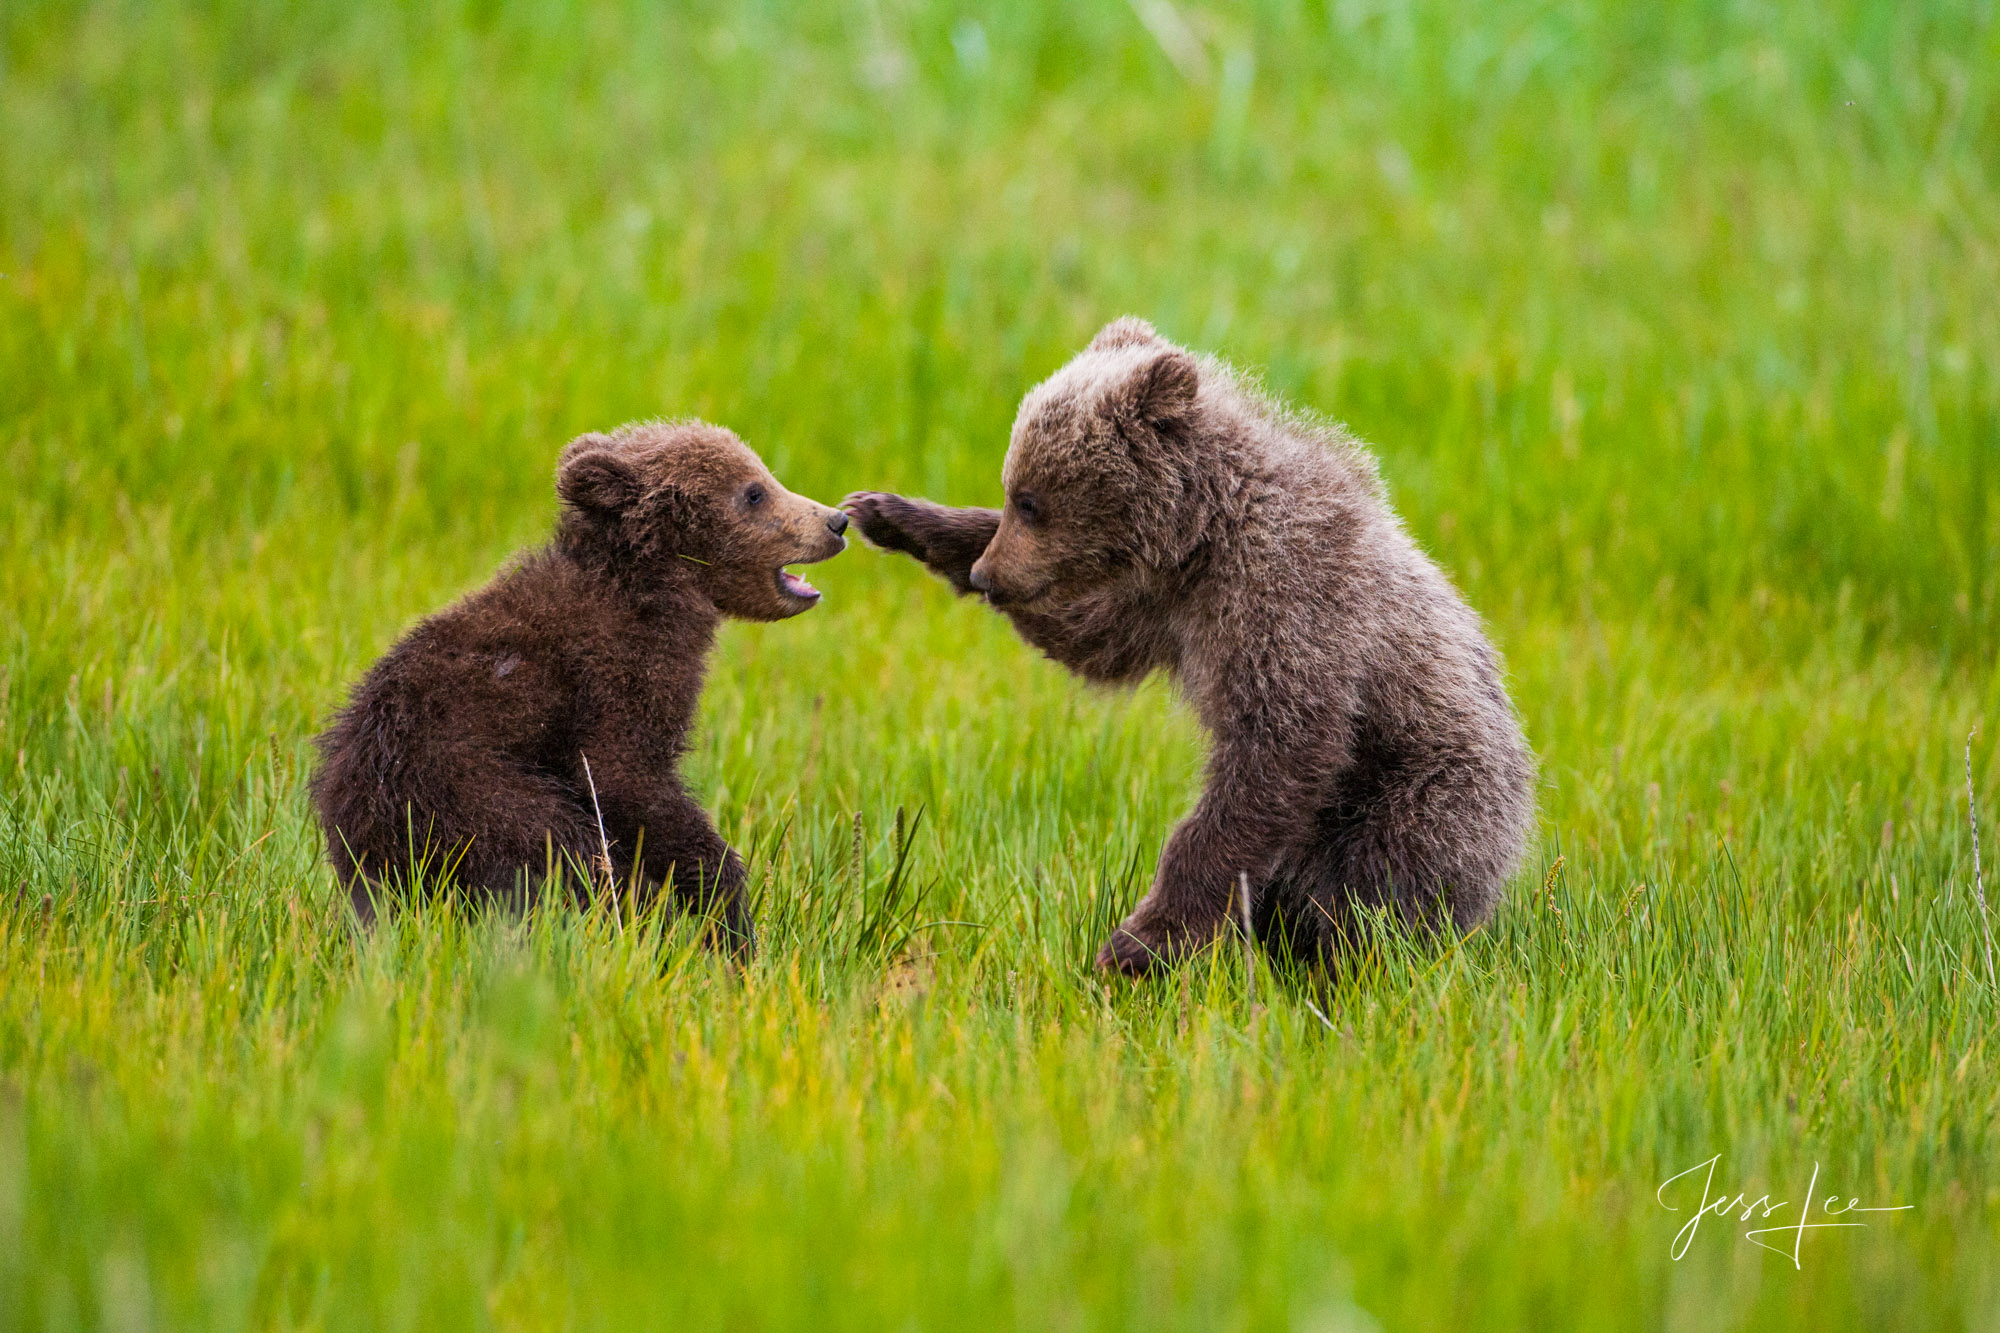 Alaska Grizzly Cubs Playing, Limited edition of 800 prints. These Grizzly bear fine art wildlife photographs are offered as high...